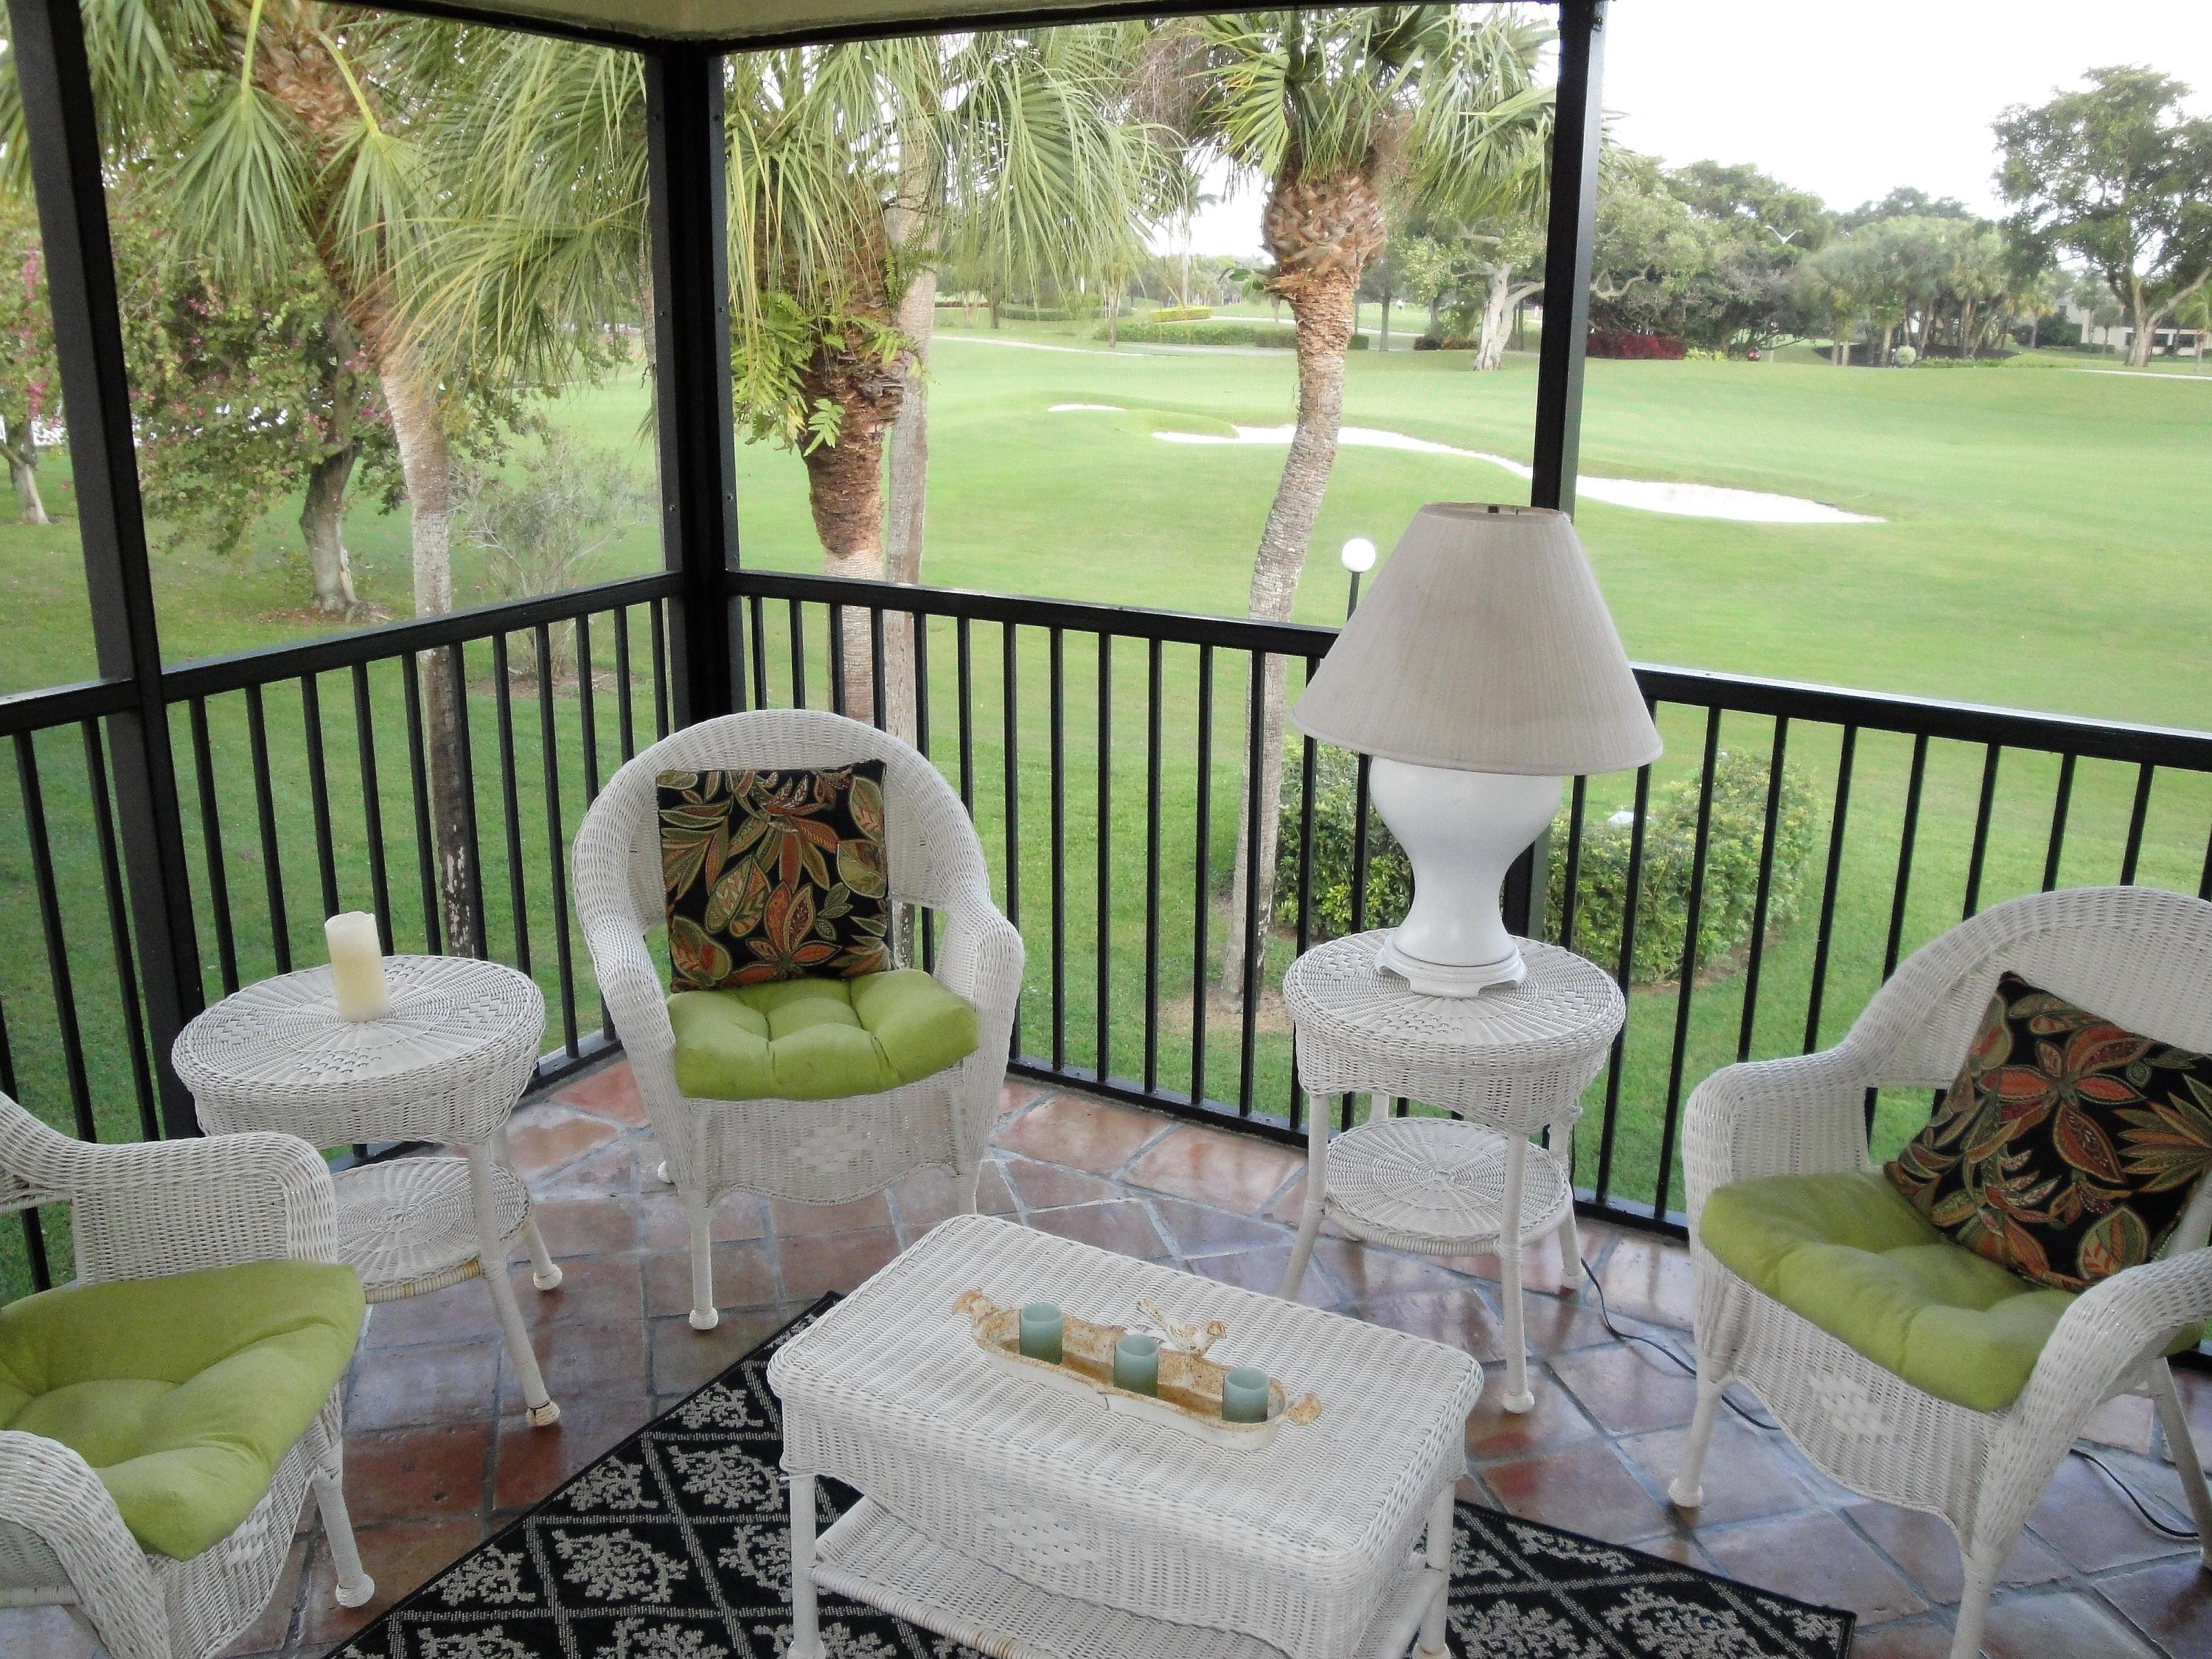 This lovely 2BR/2BA condo has an expansive lovely view of the golf course.  Offered  Turnkey! Don't miss this Decorators own Sunny, Immaculate 2nd Floor Corner Unit.Updated appliances. Fabulous location across from the Southport pool (salt water) and clubhouse ( billiards & table tennis). Great Location, short walk to Hunters Run Clubhouse. You will not be disappointed. Just bring Your Suitcase .